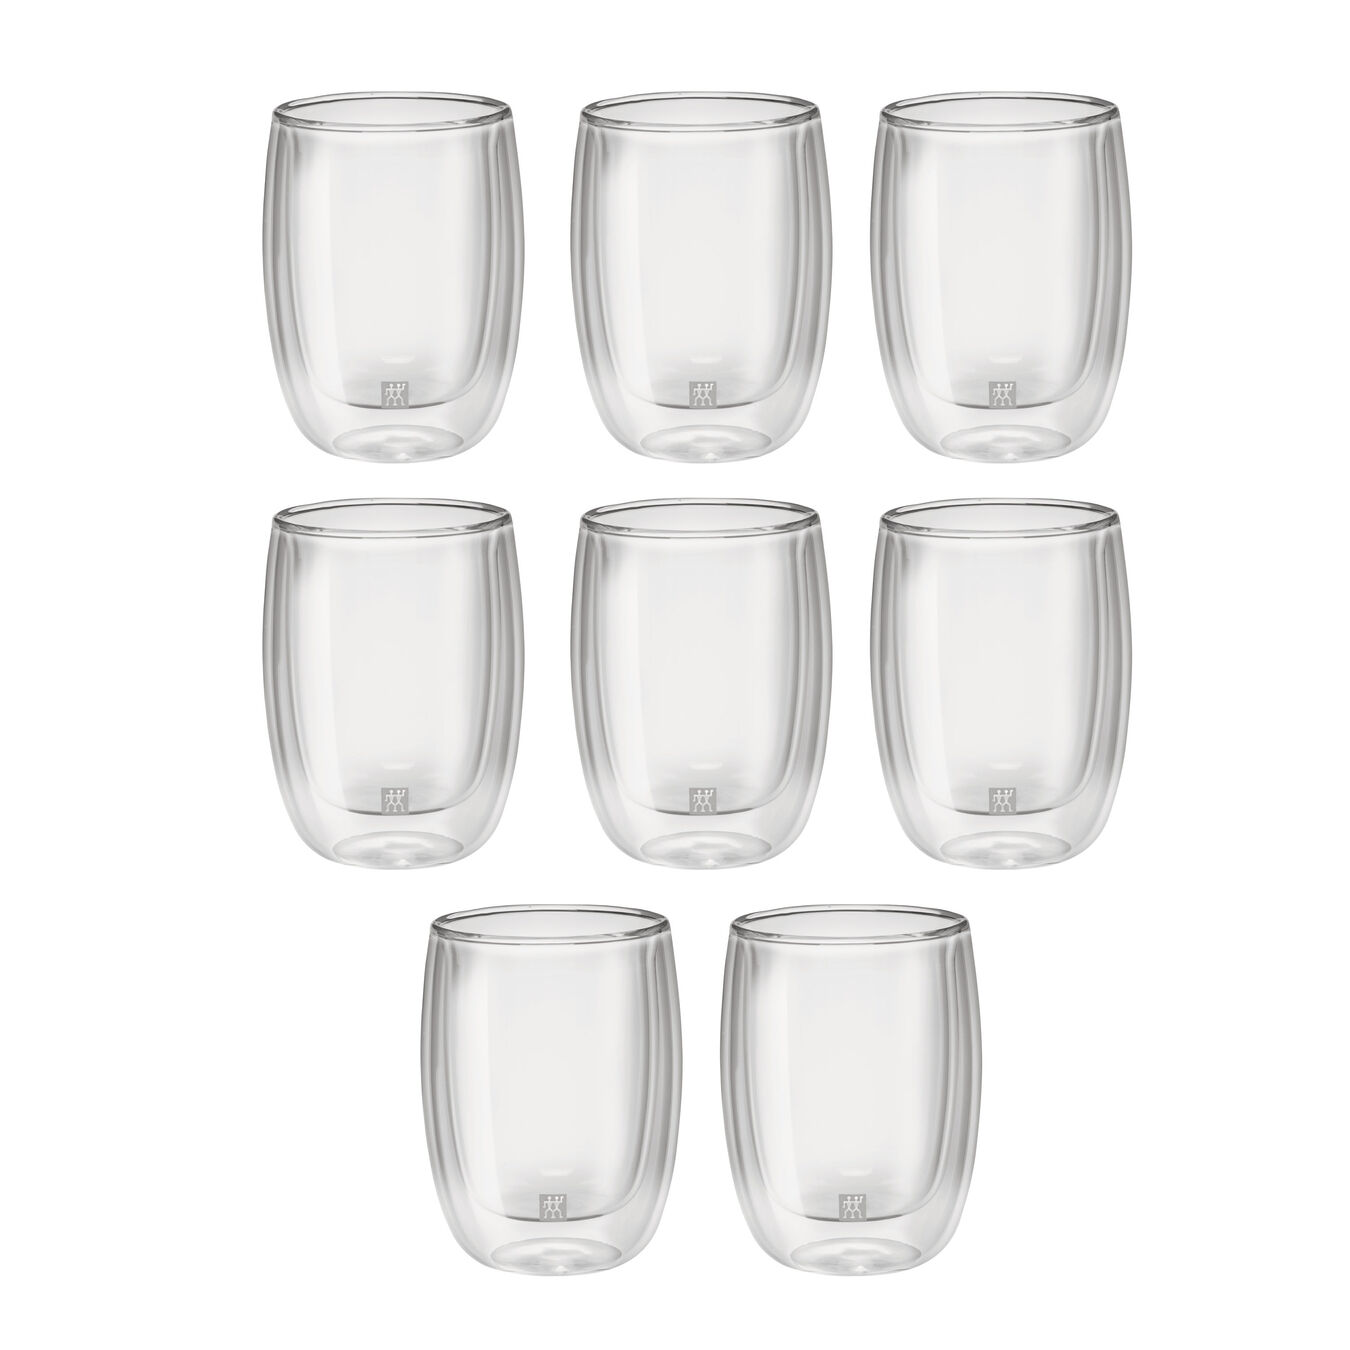 8 Piece Coffee Glass Set - Value Pack,,large 1